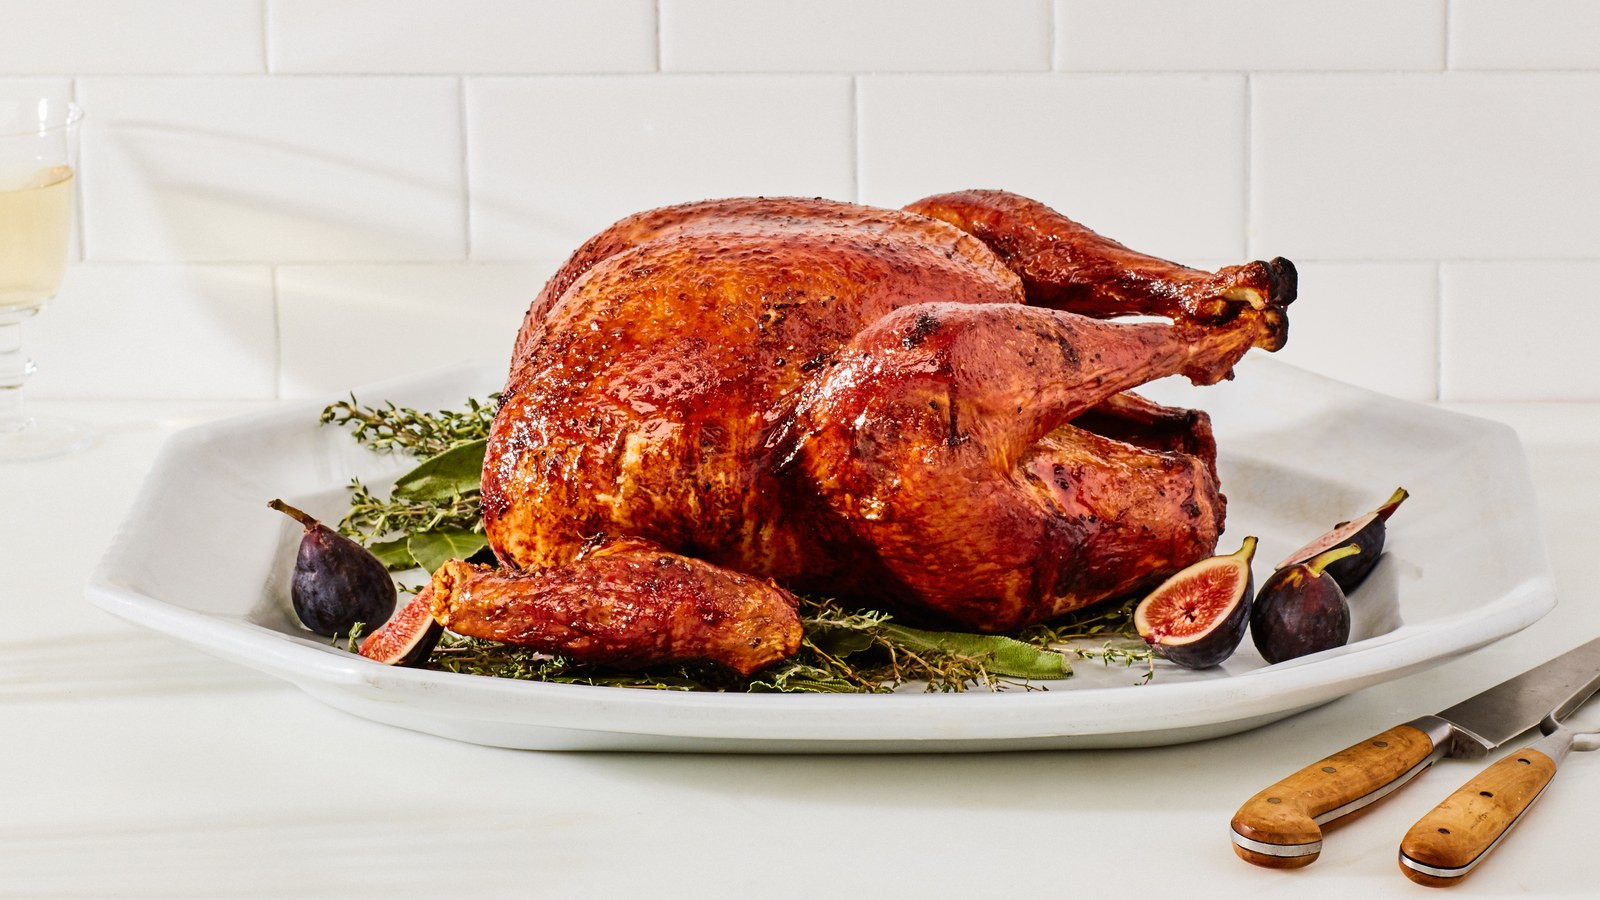 When Should I Buy My Turkey For Thanksgiving  Our 57 Best Thanksgiving Turkey Recipes